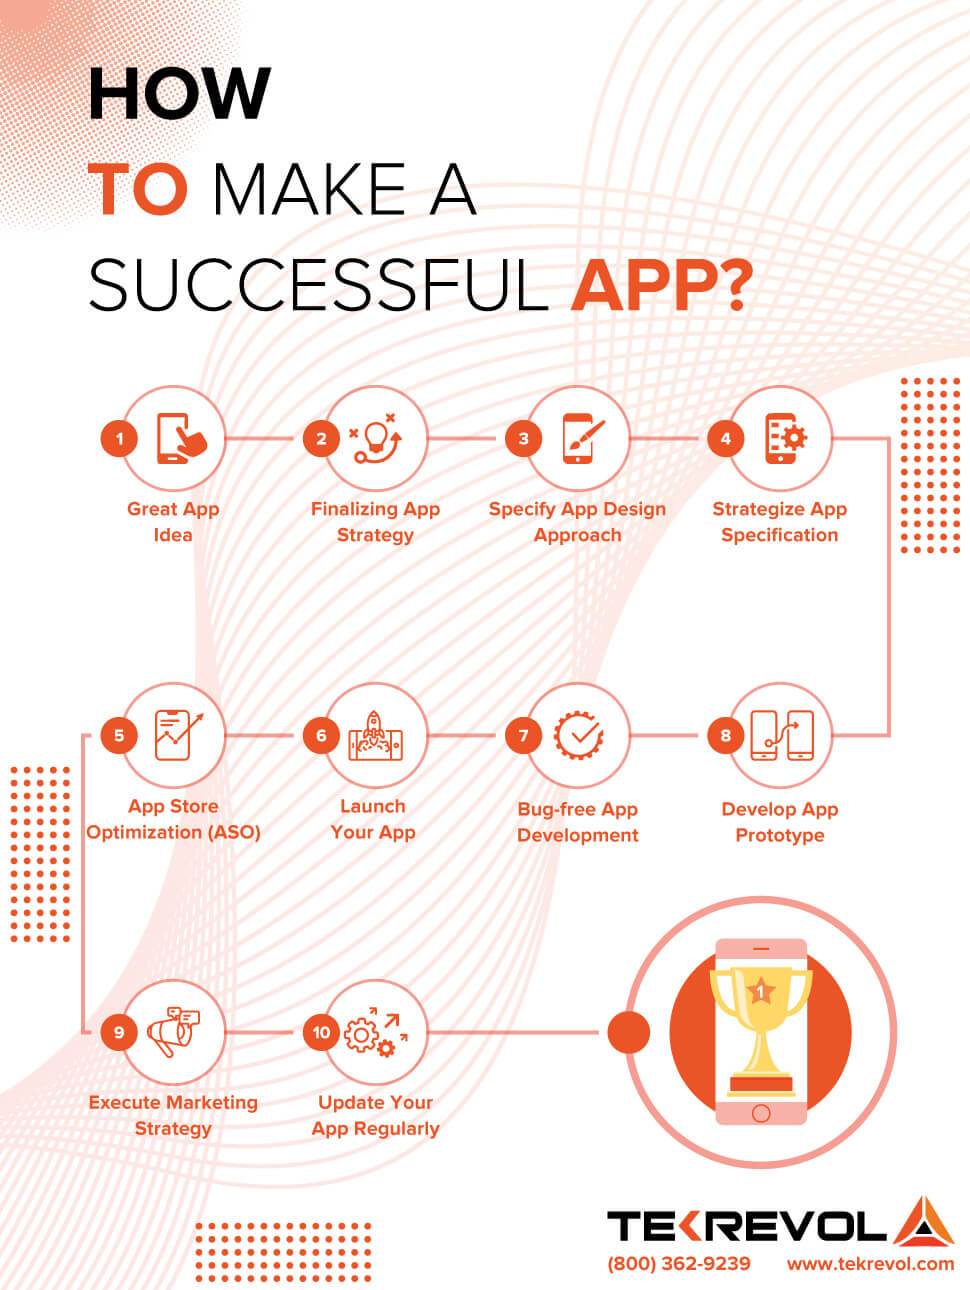 How to make app successful